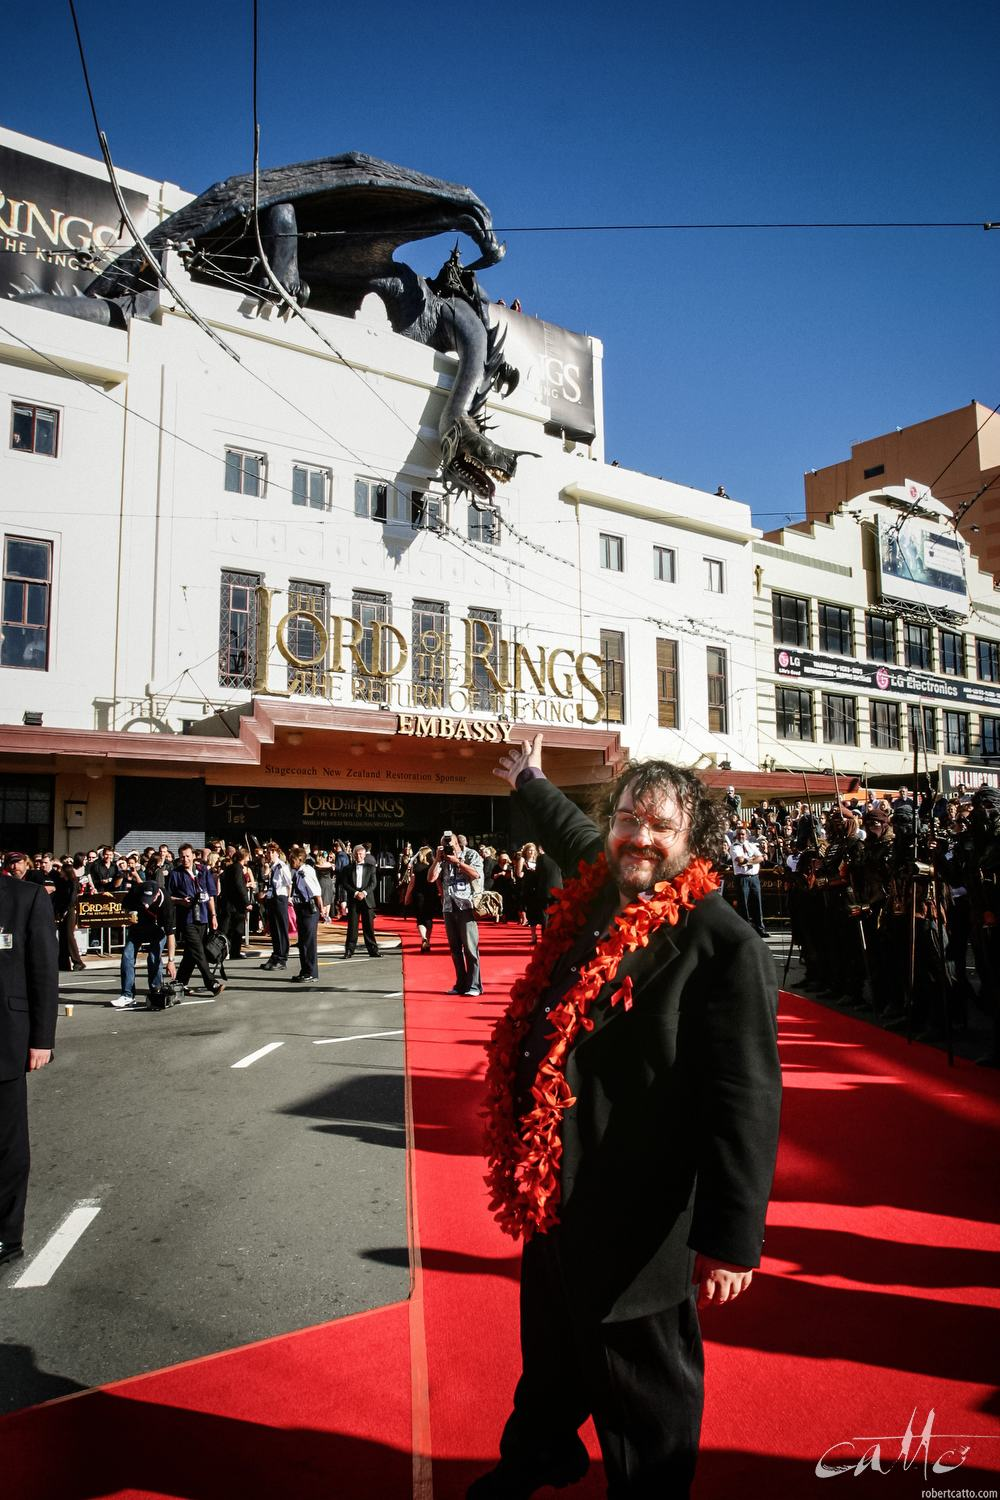 Peter Jackson at the World Premiere of The Lord Of The Rings: Return Of The King, at the Embassy Theatre in Wellington.